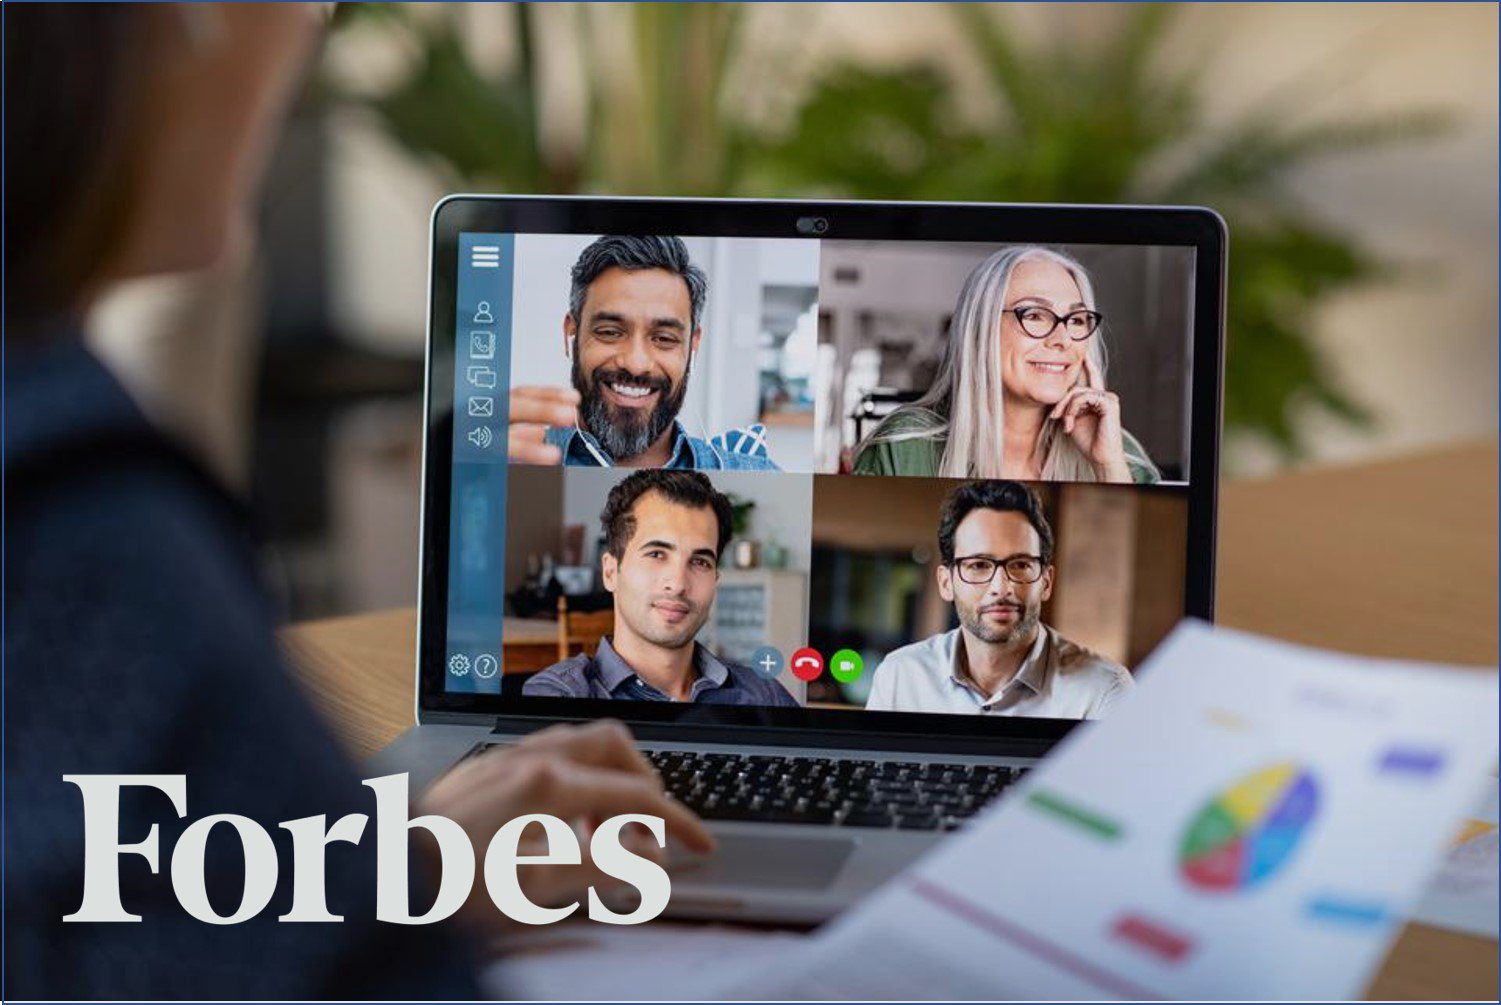 Forbes photo credit